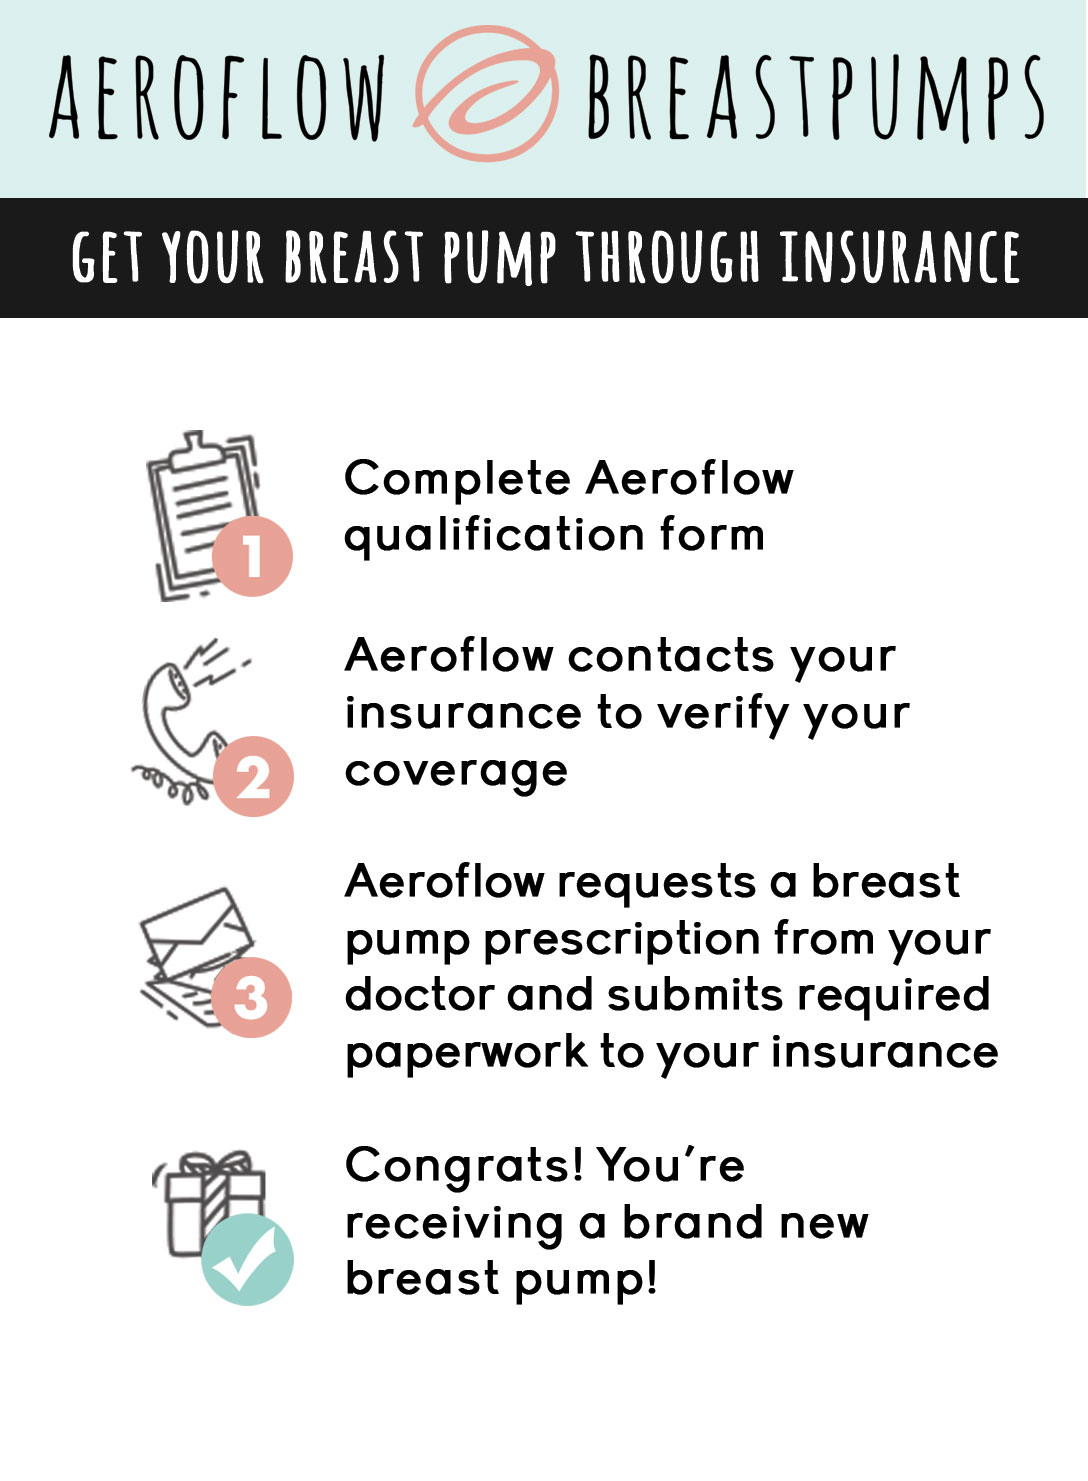 How To Get a Free Breast Pump With Aeroflow Breastpumps | Get a Free Breastpump from Insurance